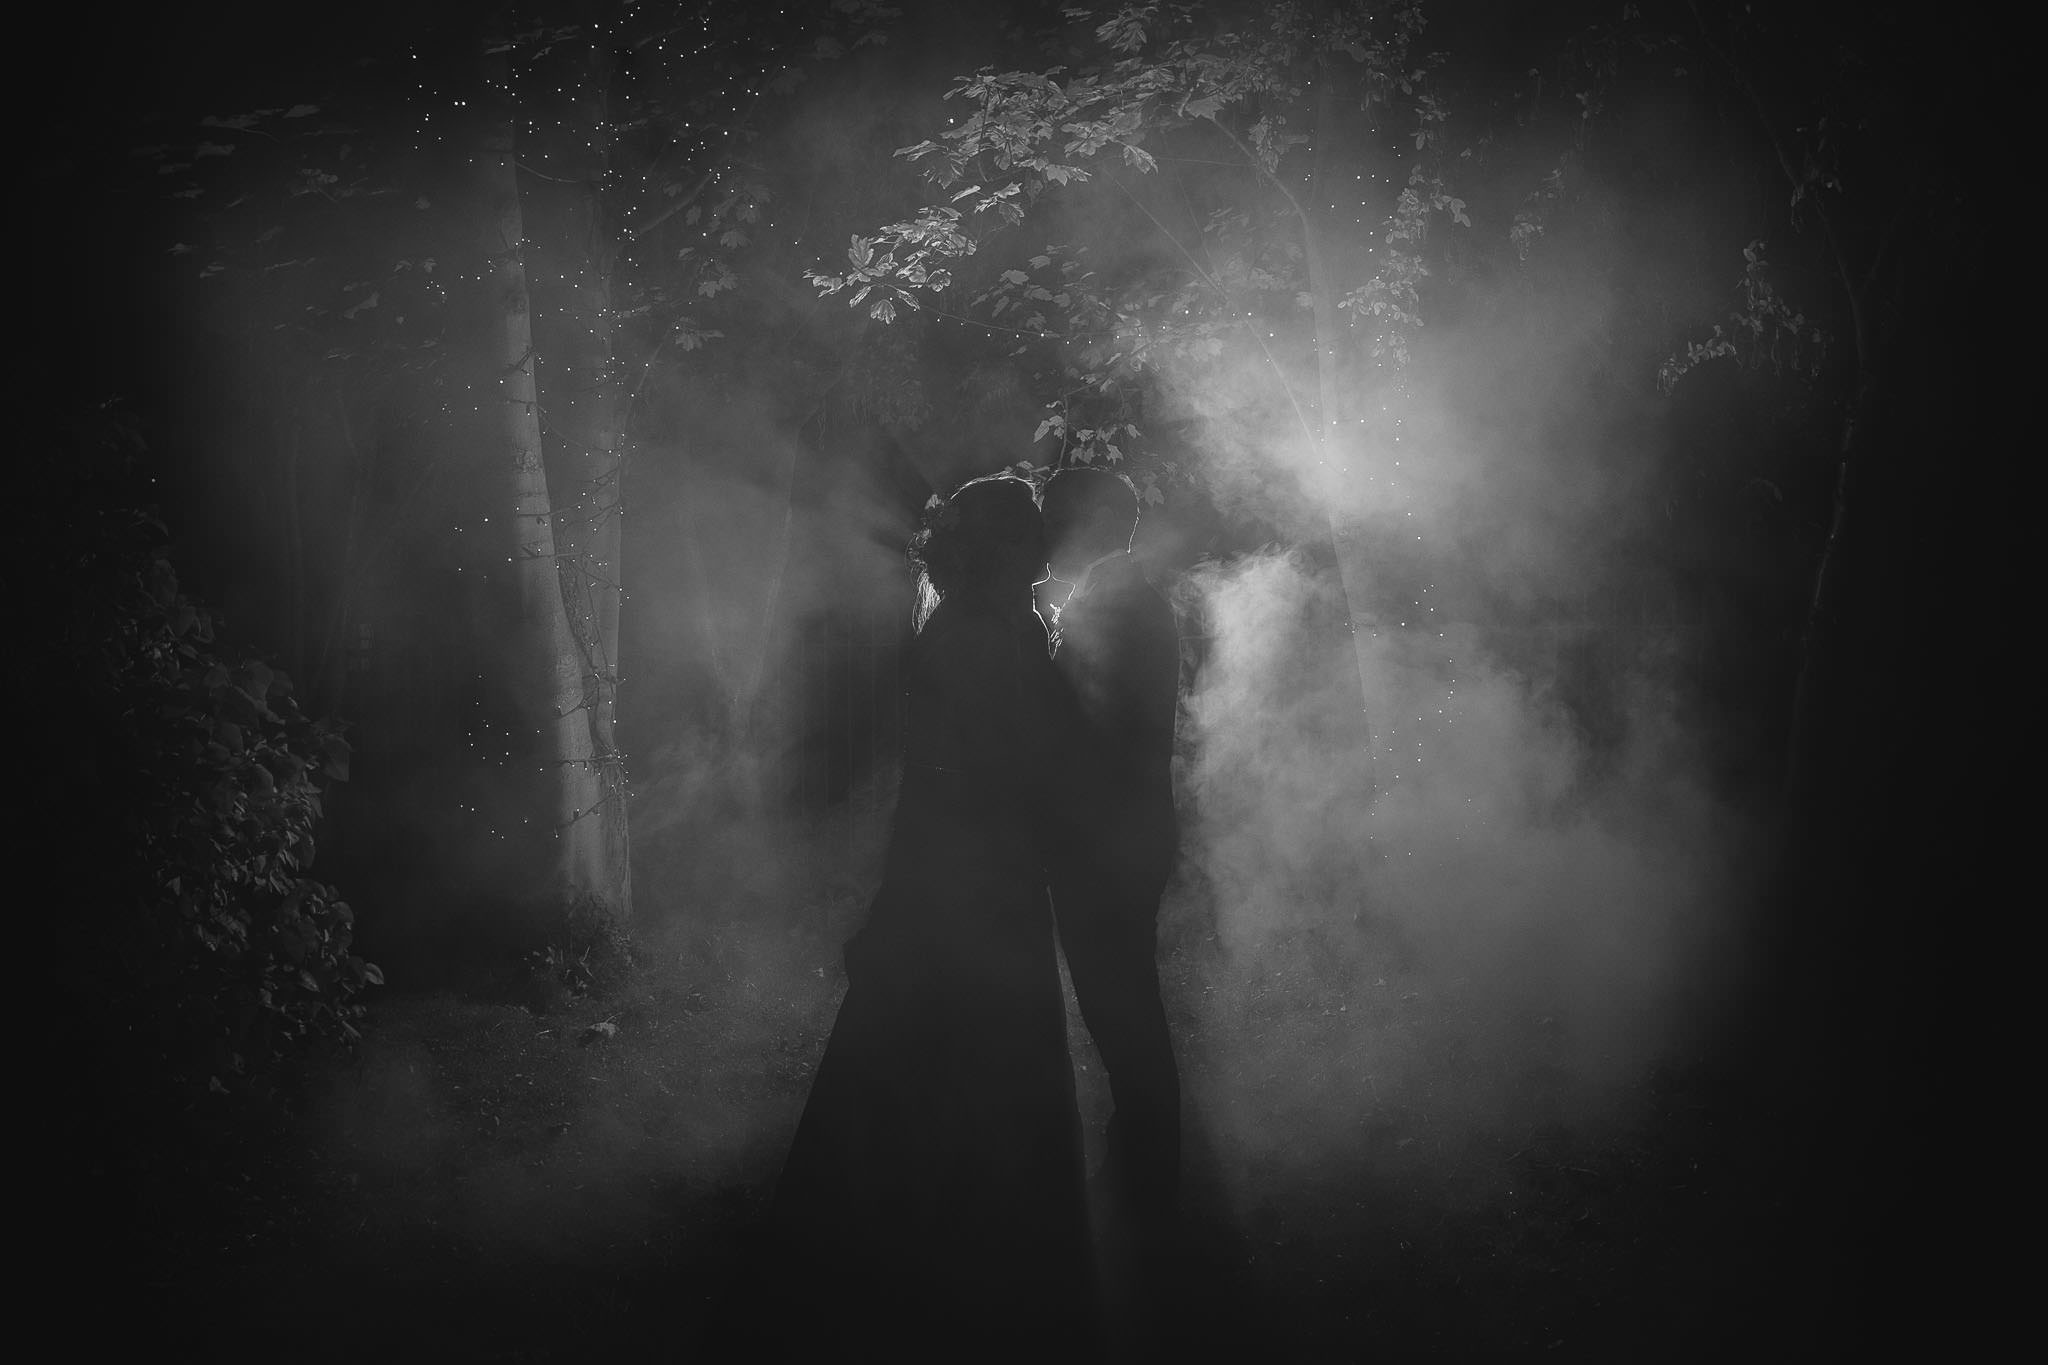 This was my favourite photo of all the ones I took. The flash made the couple into silhouettes, with a strongly defined rim light. The flash is punching through the smoke and giving a very romantic and dreamy mood. Combined with the twinkling strings of fairy lights and the trees it works very well to transform a tiny corner of a Mining Institute garden into something magical.